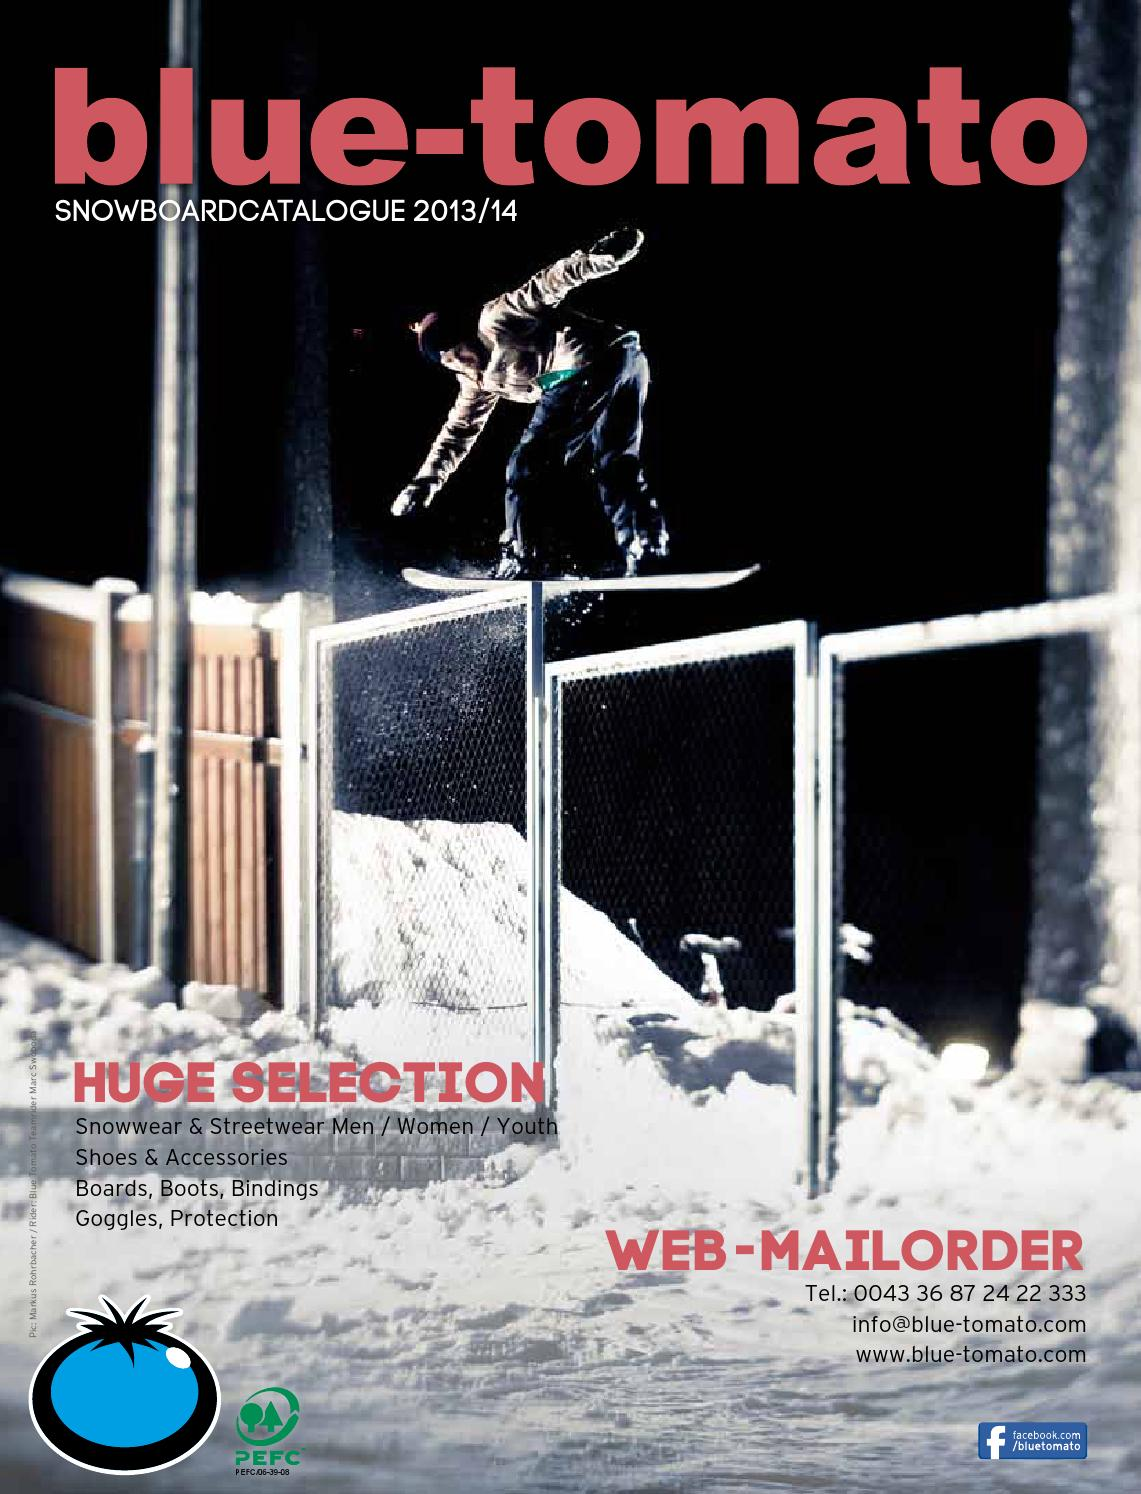 2cdede105949 Blue Tomato Snowboard Catalogue 2013 14 by Blue Tomato - issuu